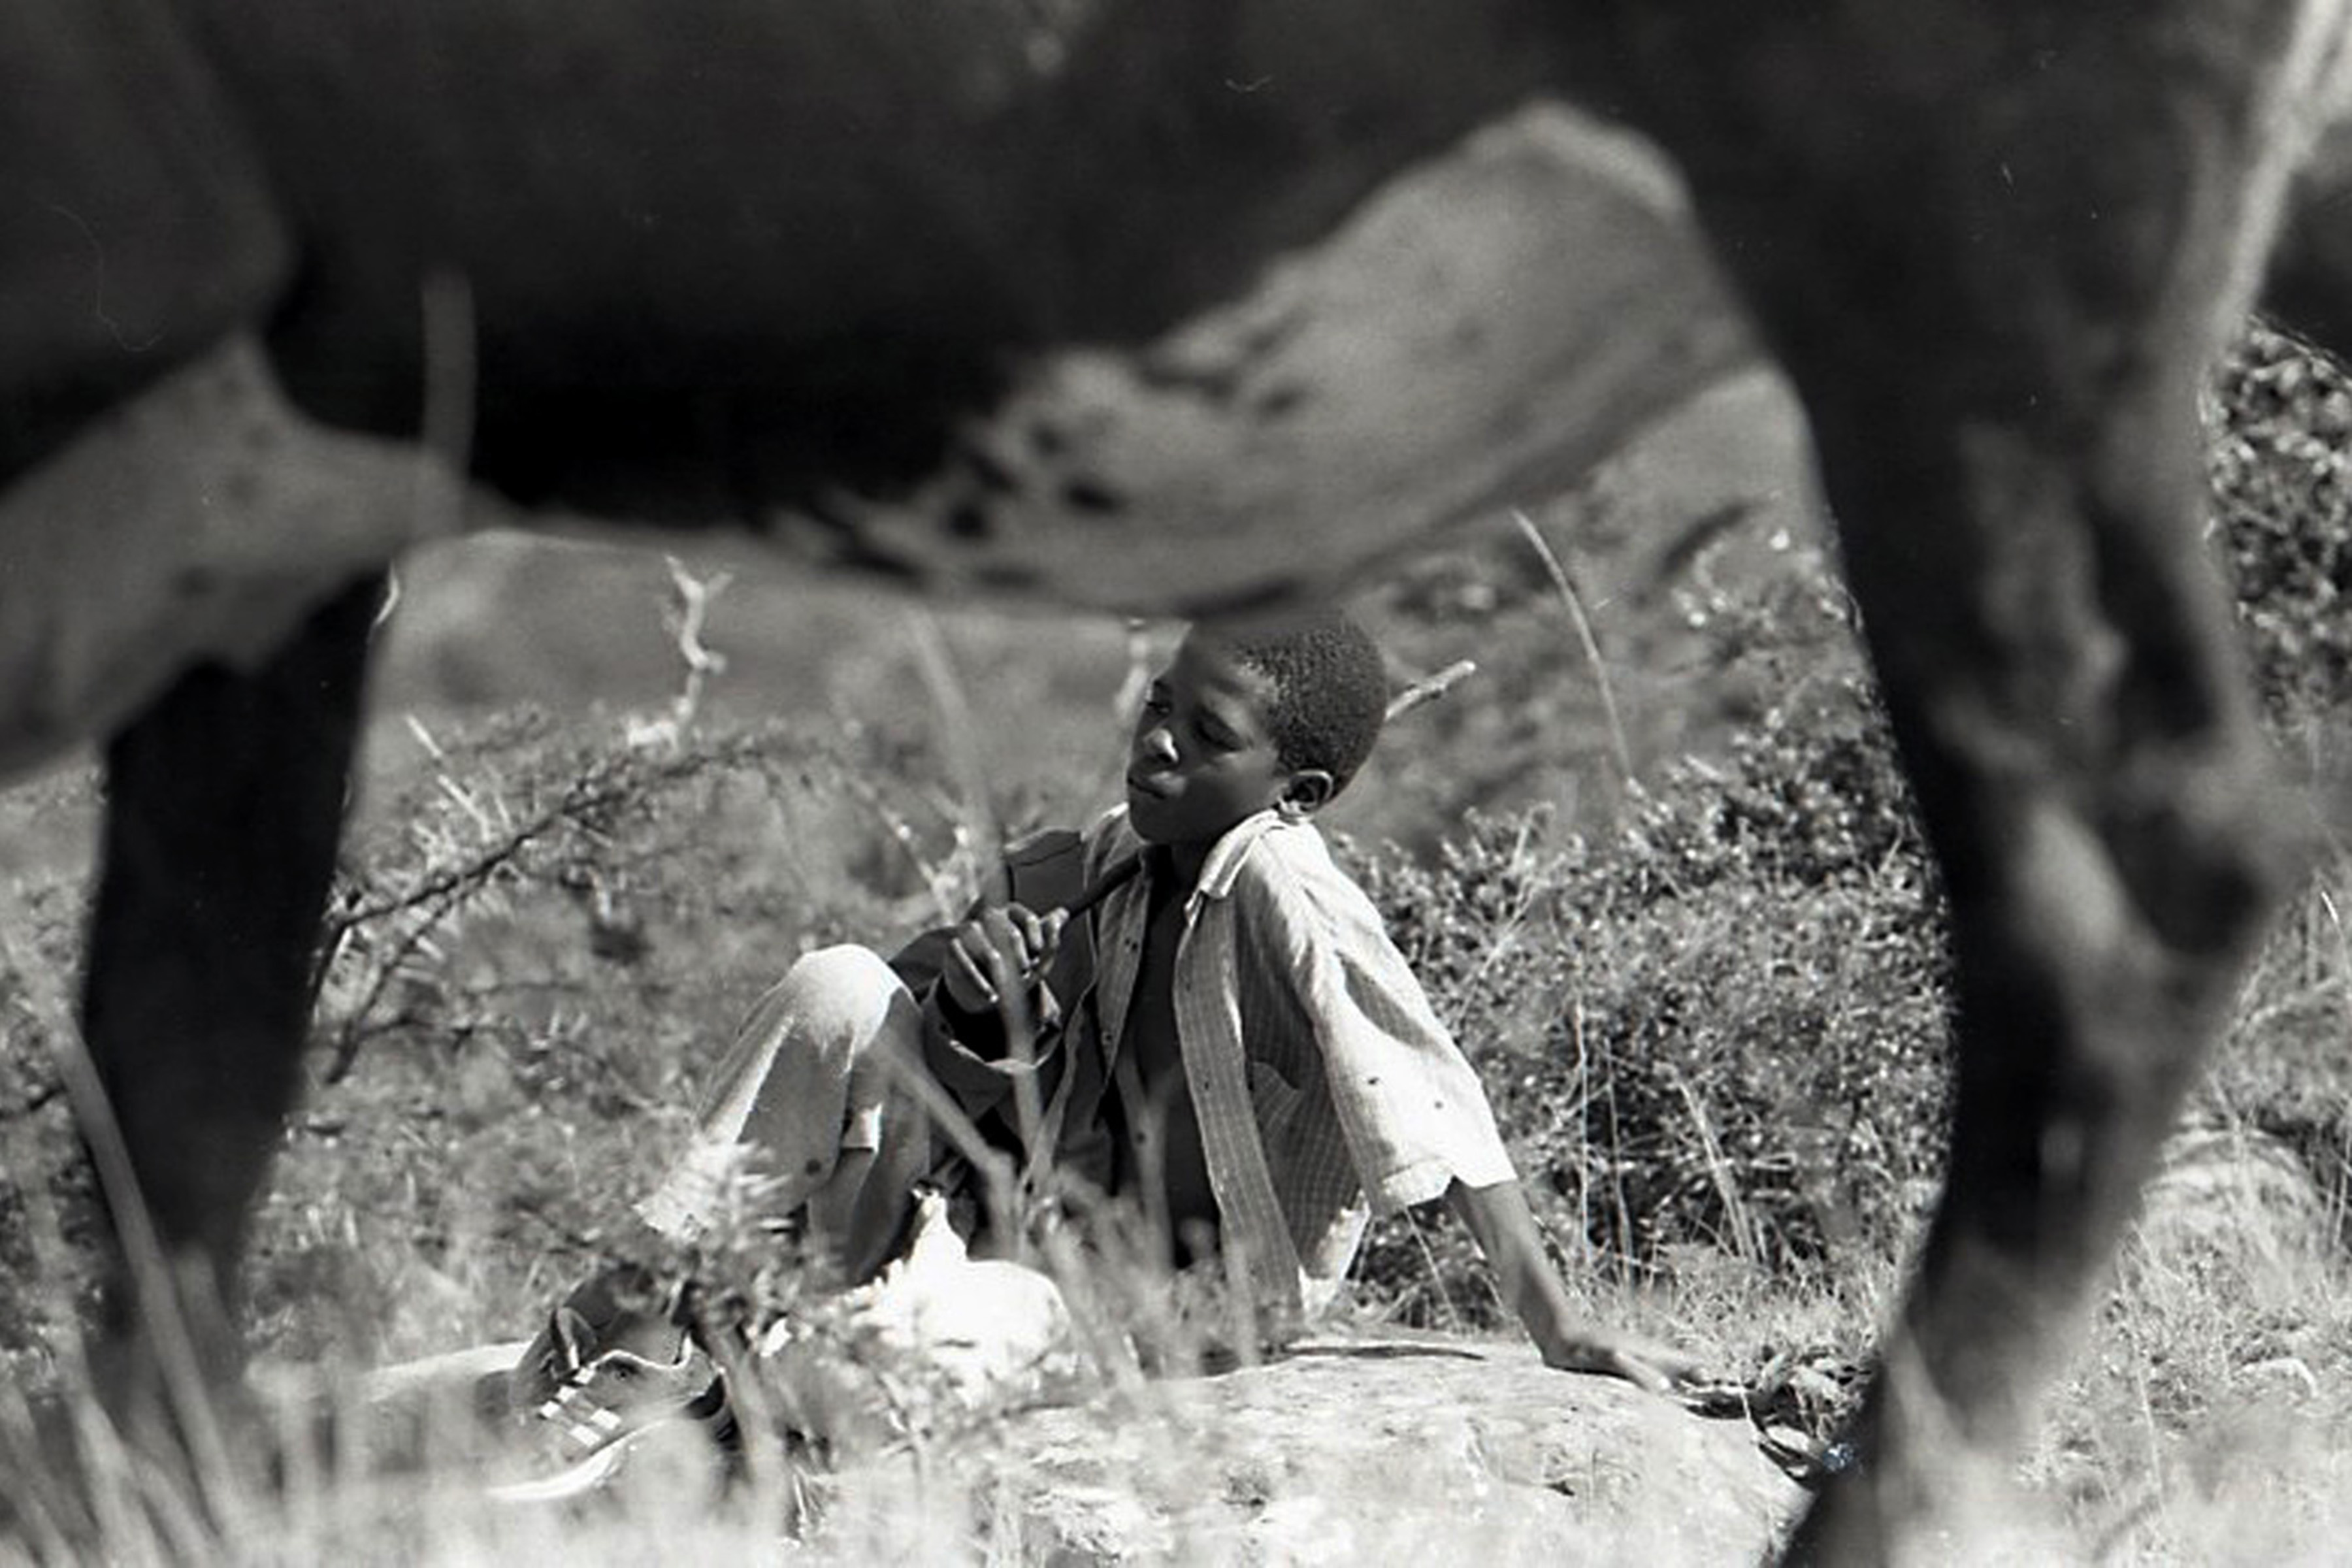 2001: A young boy tending his parent's cattle on the outskirts of Ncera, Alice. A slice of an ongoing life caught on black and white film. (Photograph by Bonile Bam)